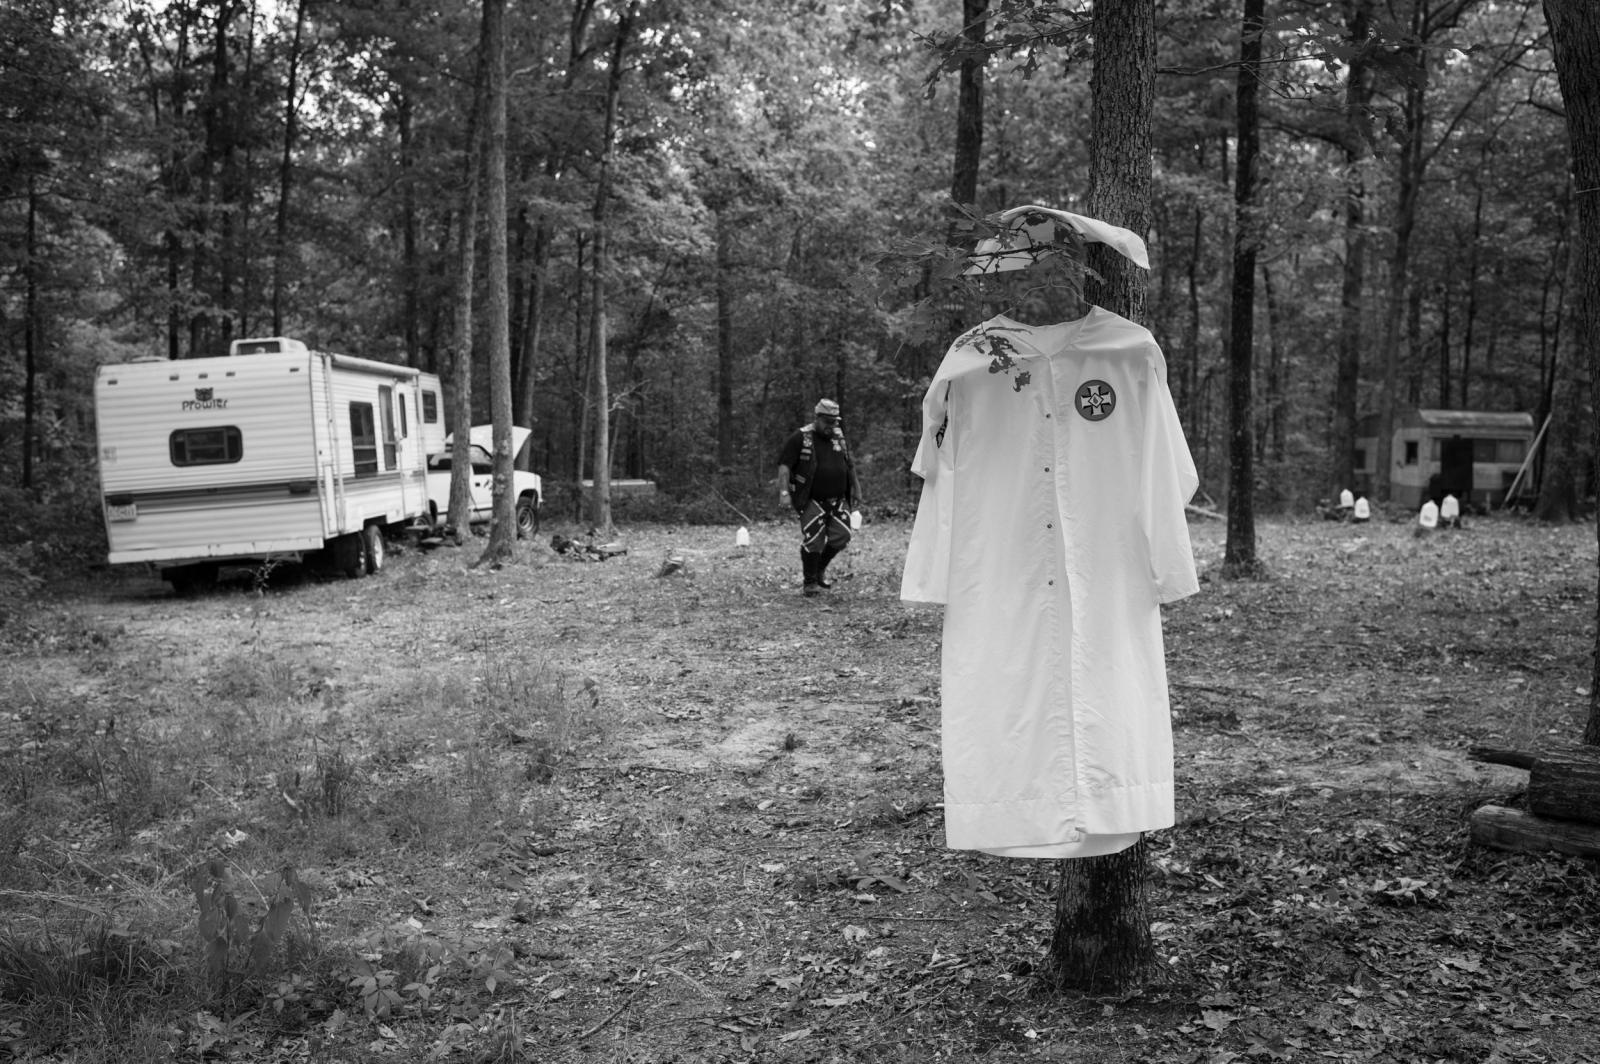 Missouri.A ceremonial Klan robe hangs by a tree shortly before a cross lighting ceremony, which will take place at dusk.